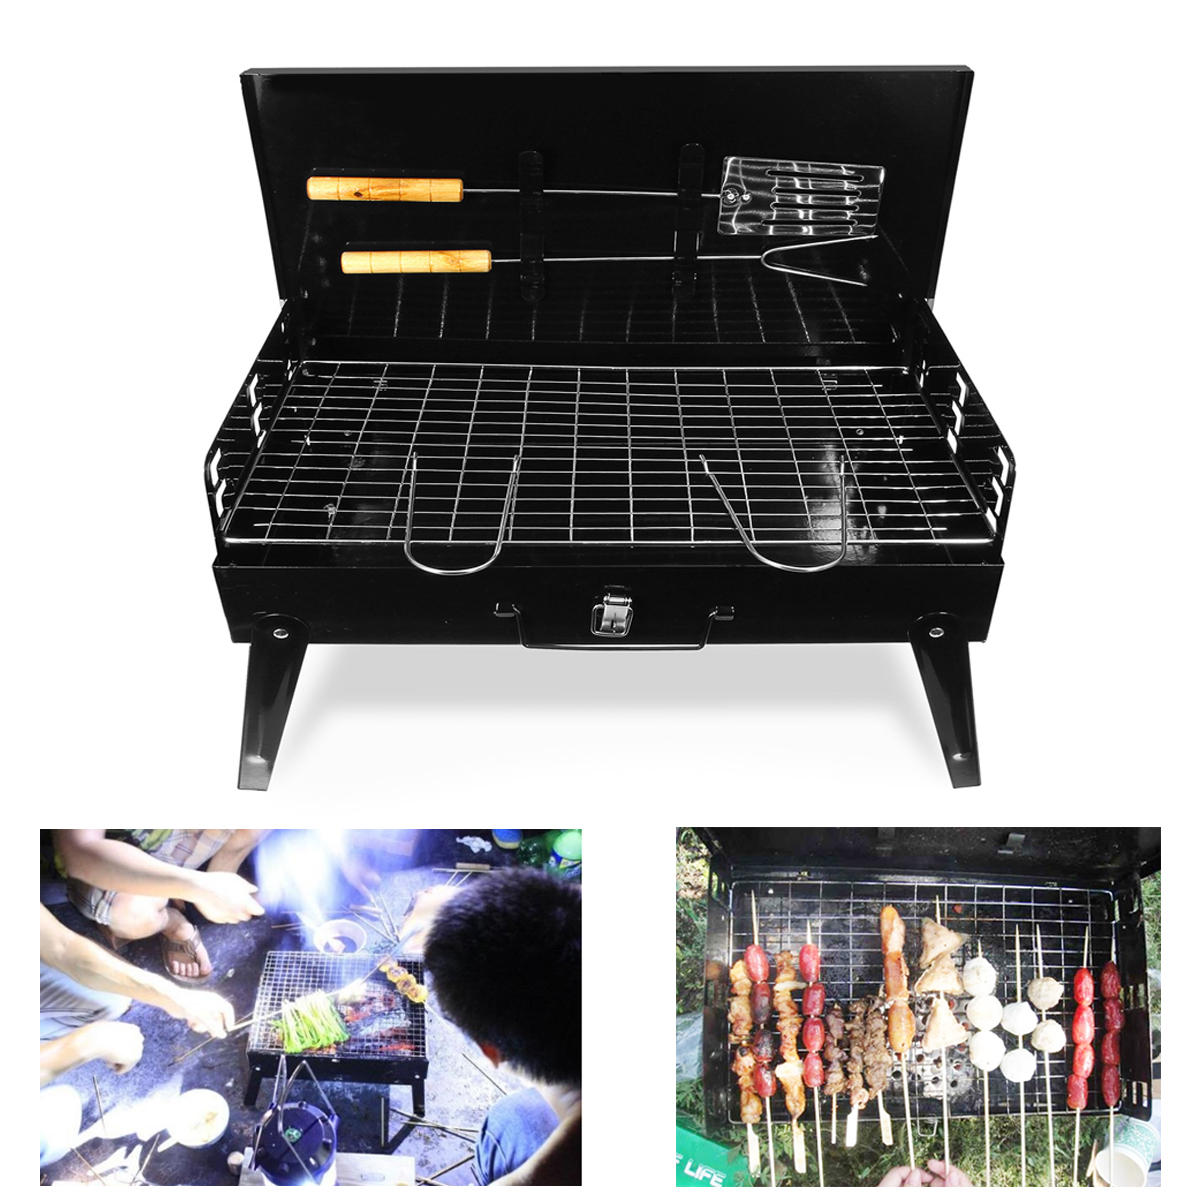 Grill Camping Folding Portable Bbq Barbecue Grill With Tools Charcoal Camping Garden Outdoor Cooking Ware